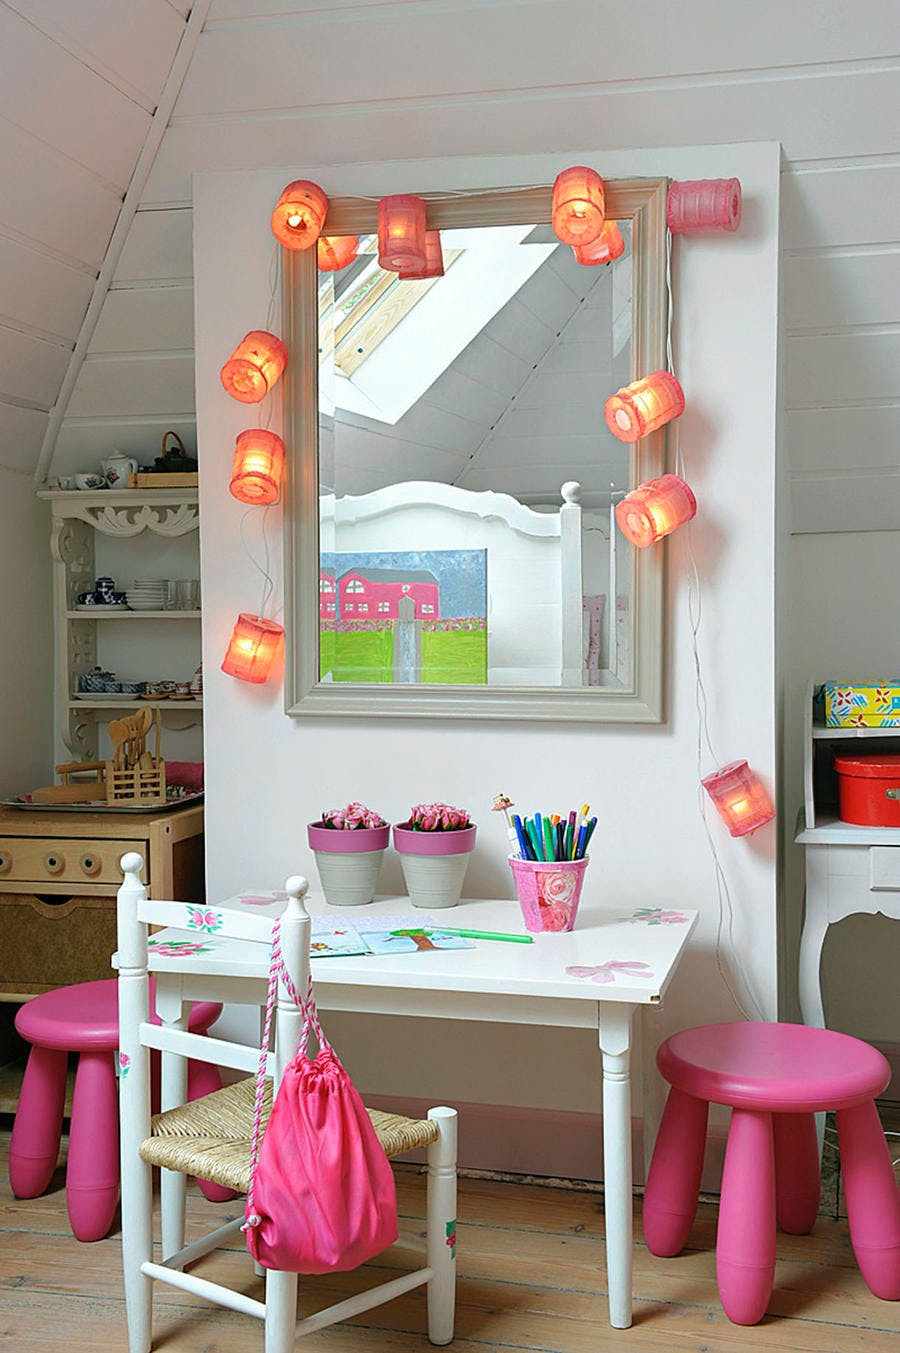 Miroir girly